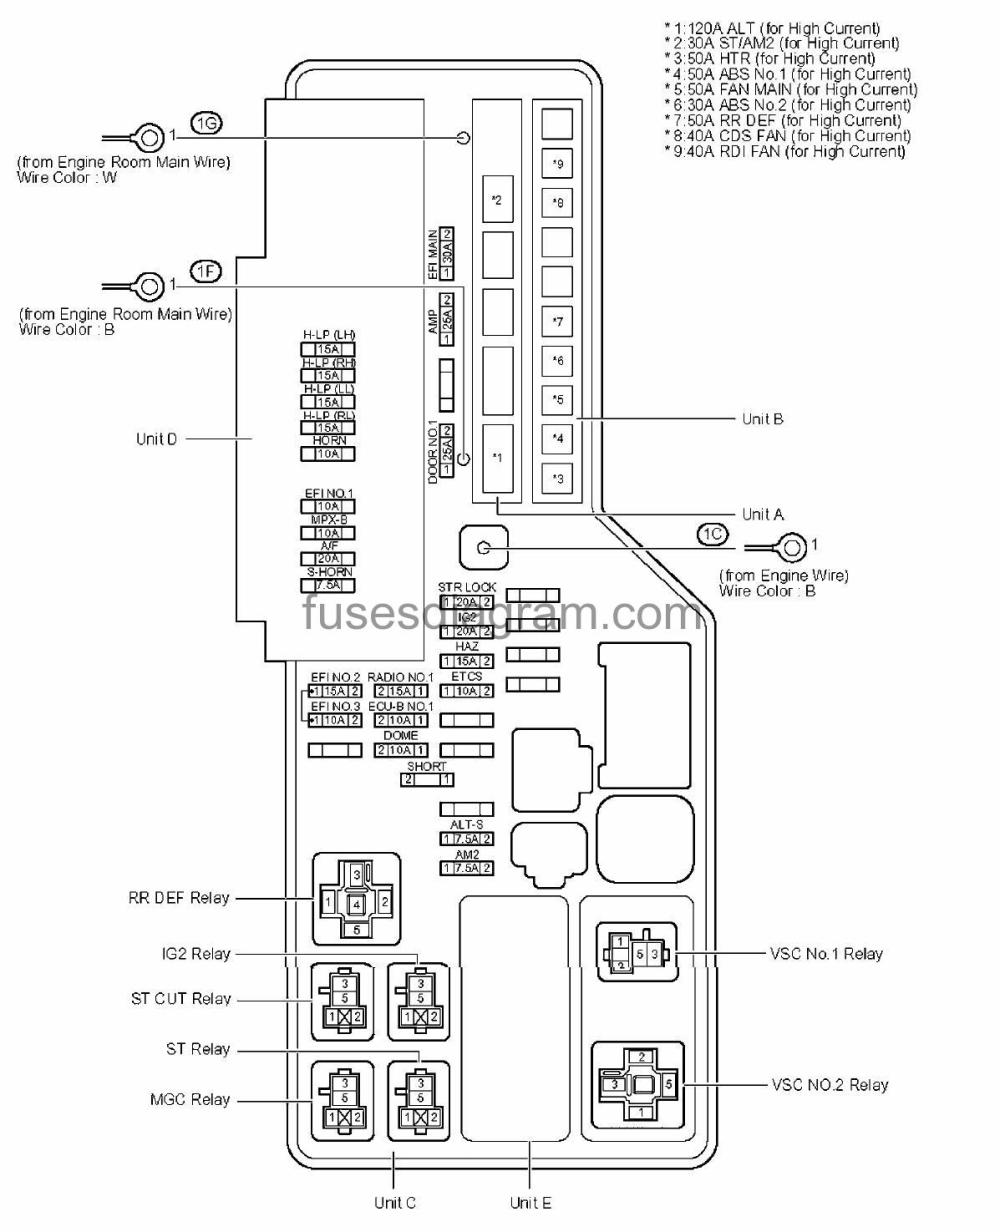 medium resolution of 2001 toyota avalon fuse diagram wiring library 2012 kia forte fuse diagram 2001 toyota avalon fuse